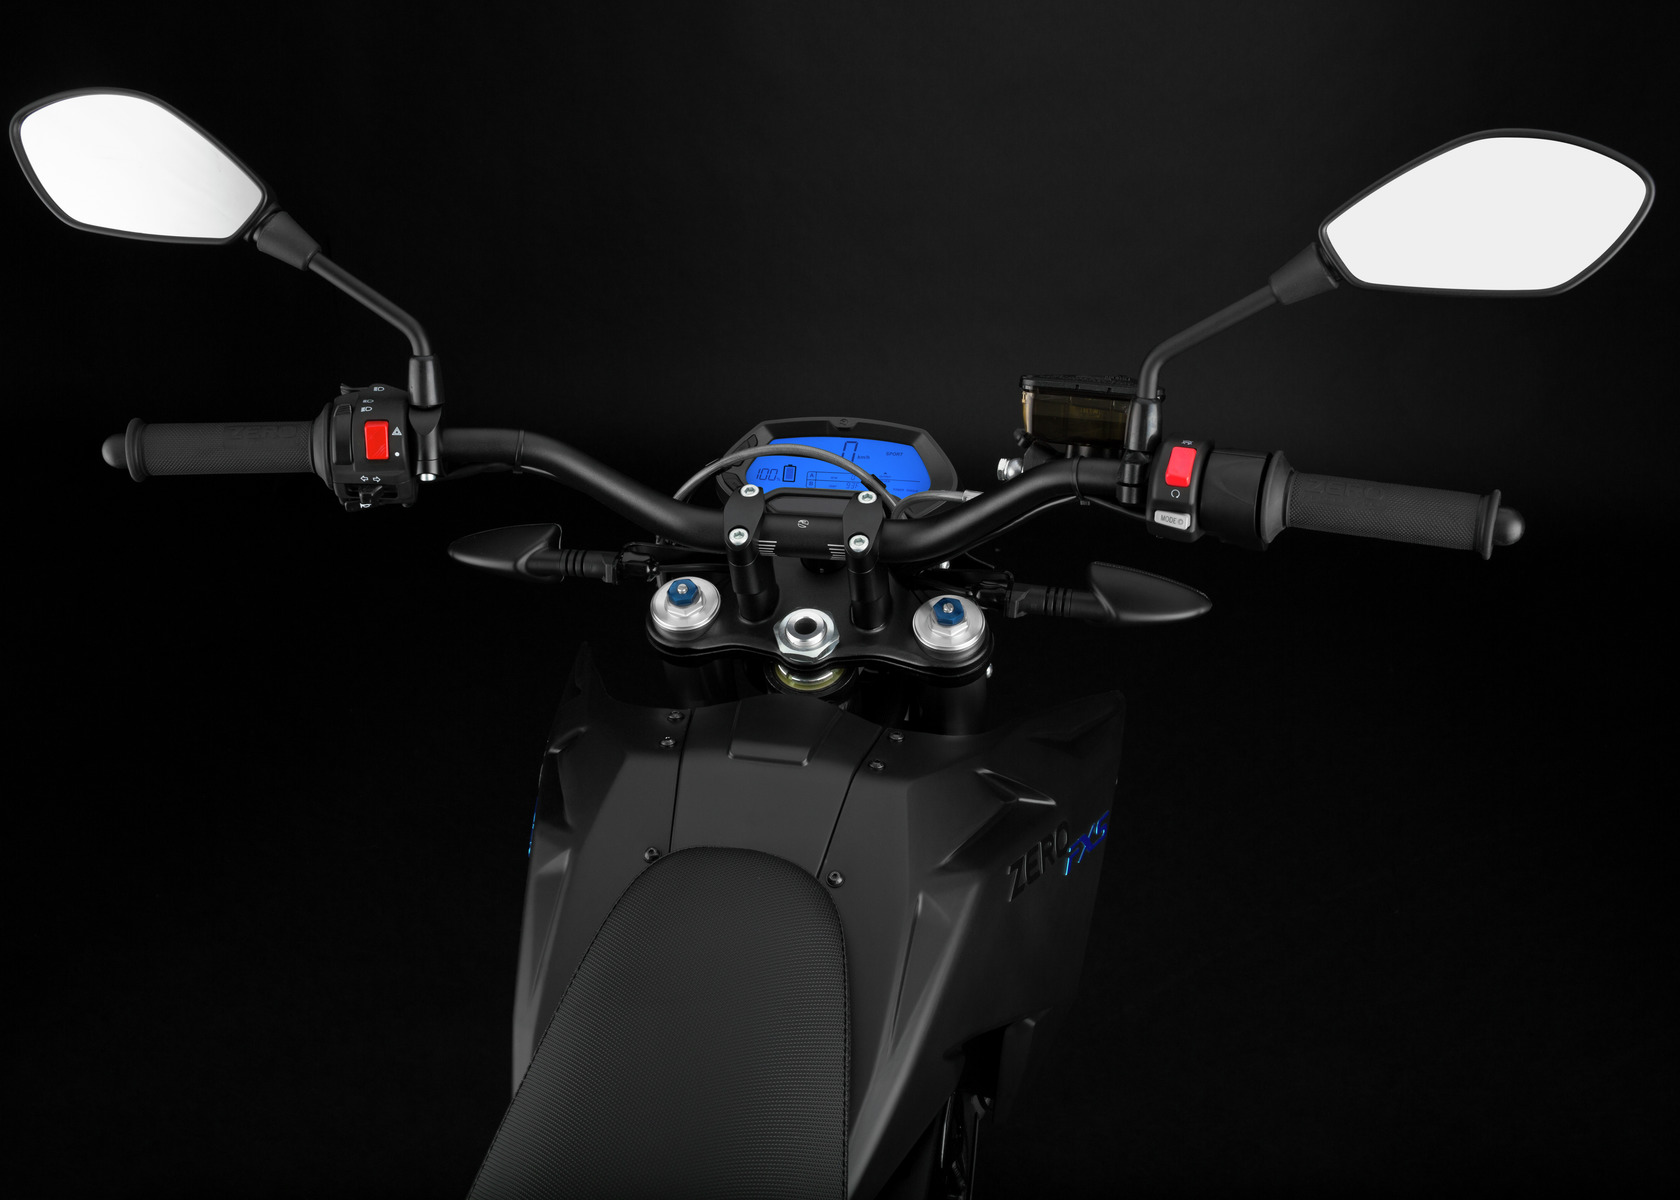 2016 Zero FXS Electric Motorcycle: Handlebars, Dash and Controls